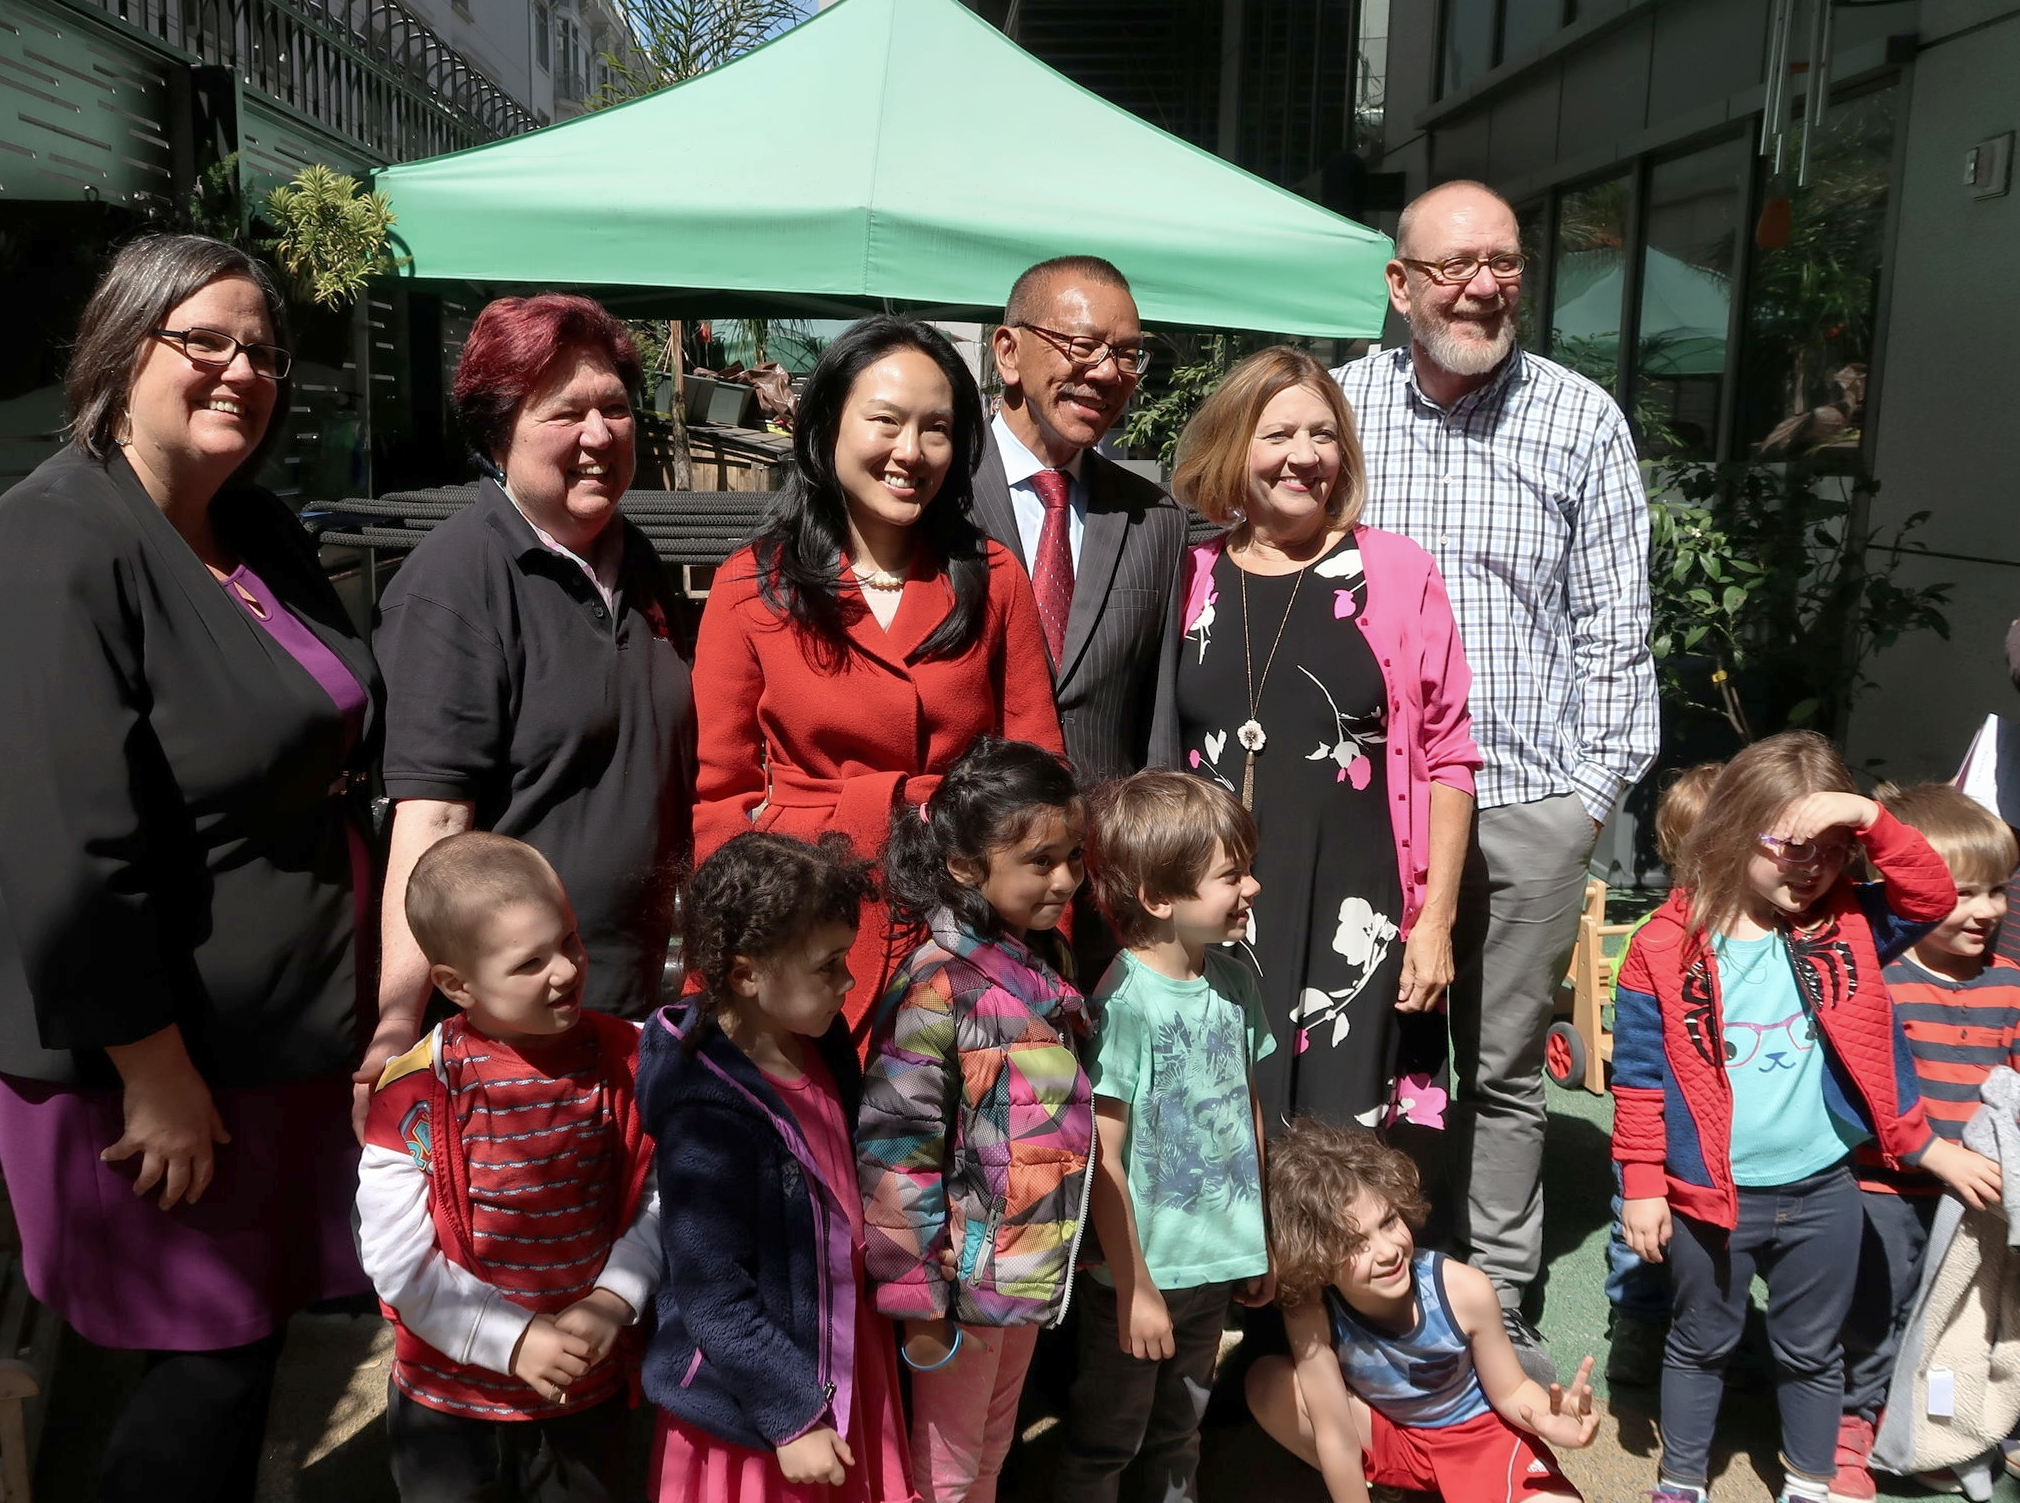 Left to right, September Jarrett, Executive Director of San Francisco Office of Early Care and Education, Bev Melugin, Chair of CPAC Quality Committee and Executive Director of C5 Children's School, Supervisor Jane Kim, Supervisor Norman Yee, Wu Yee CEO Monica Walters and Graham Dobson, Senior Policy Analyst of San Francisco Office of Early Care and Education with children from C5 Children's School.